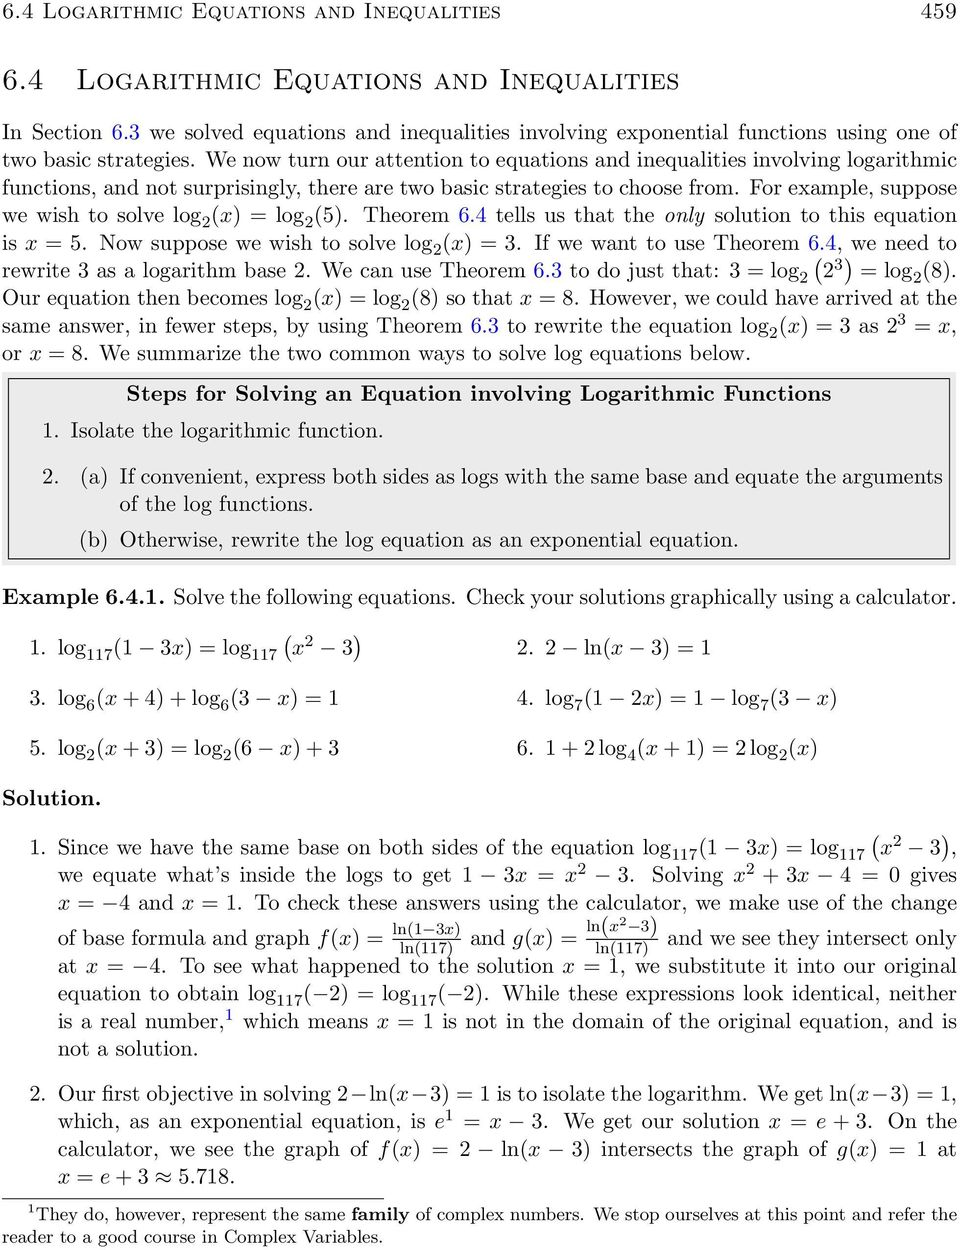 6.4 Logarithmic Equations and Inequalities - PDF Free Download